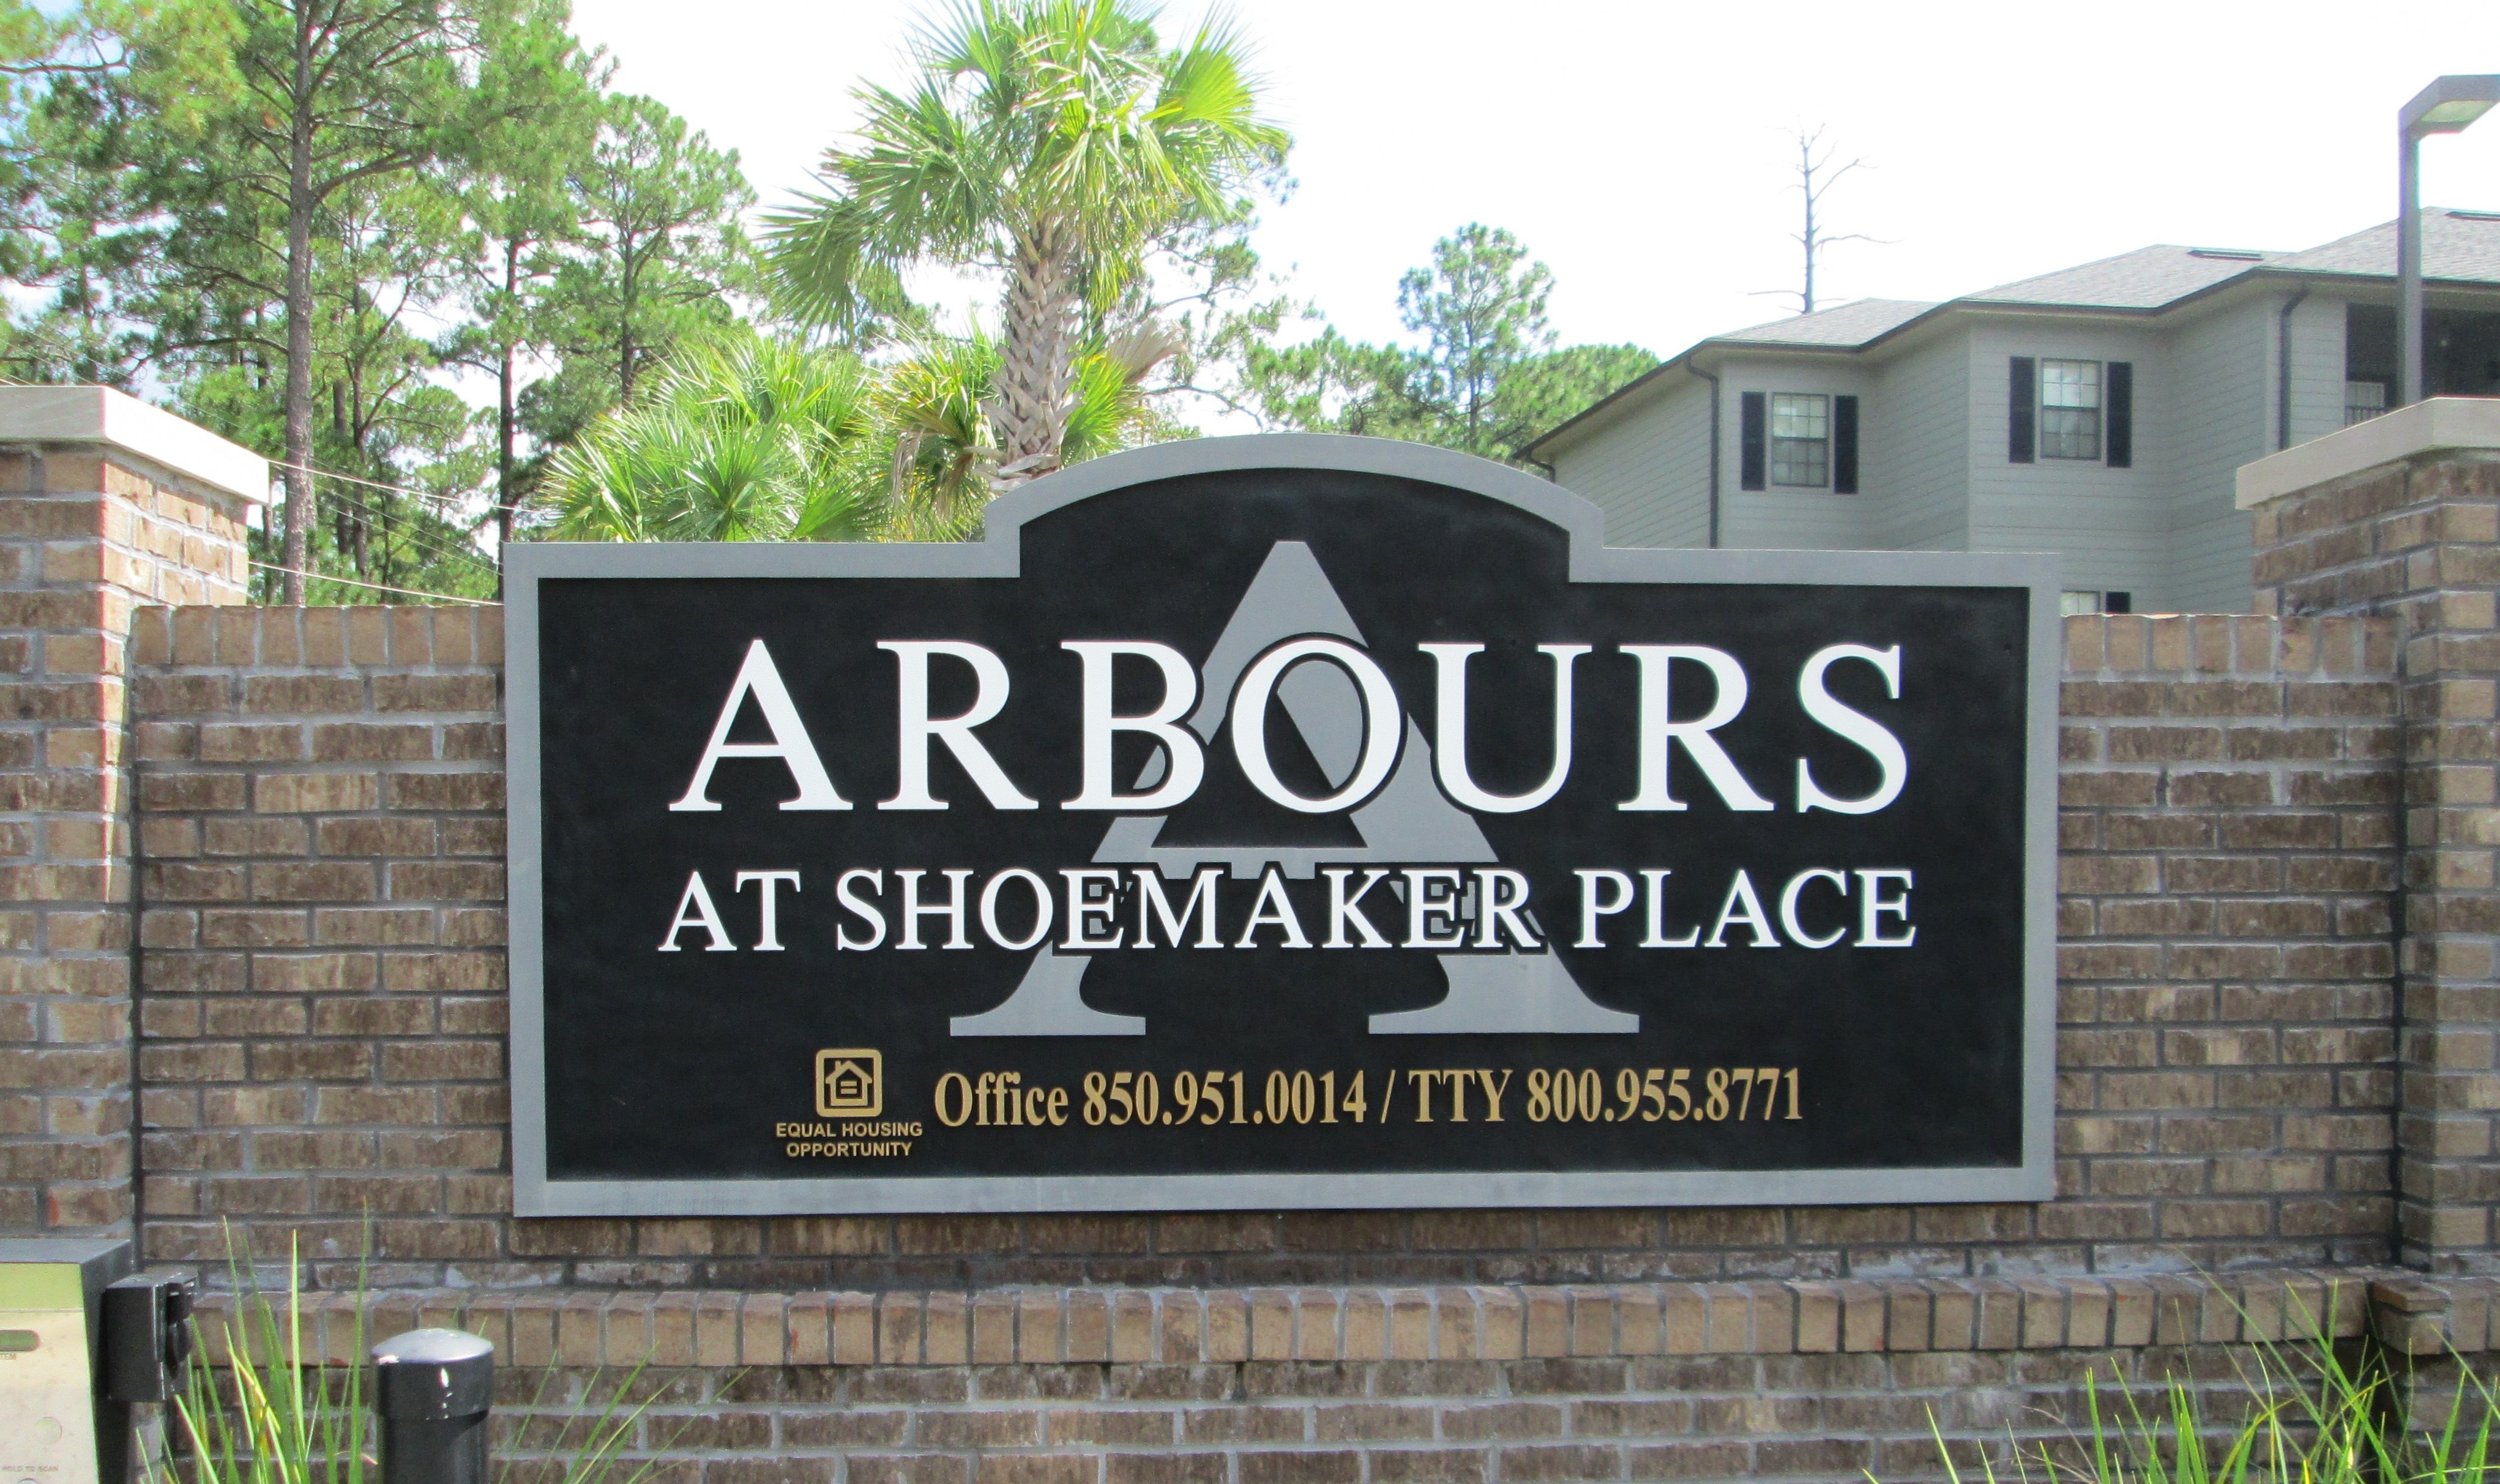 Arbours at Shoemaker Place